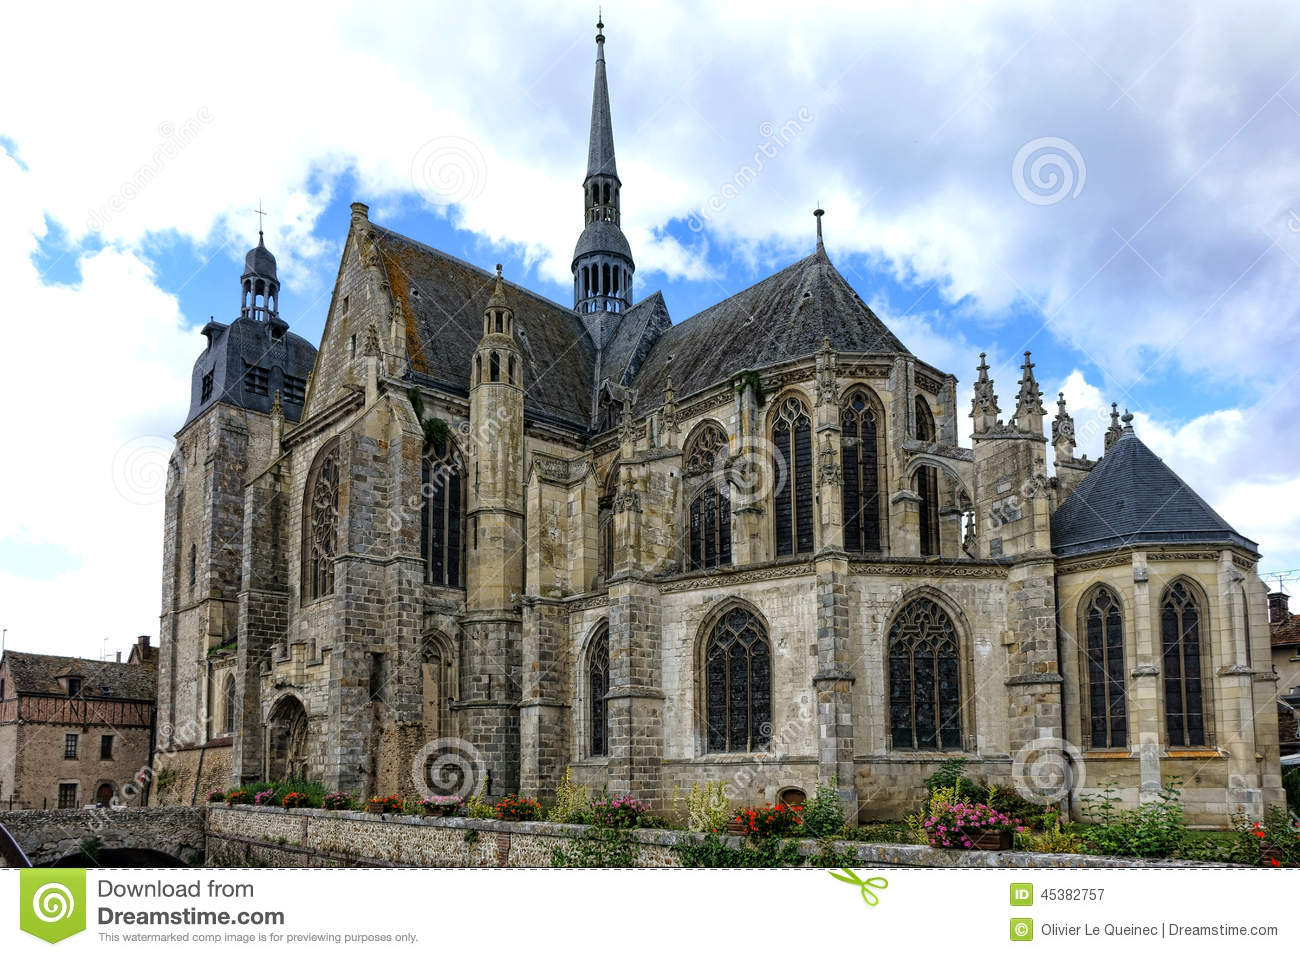 Gothic architecture in medieval france College paper